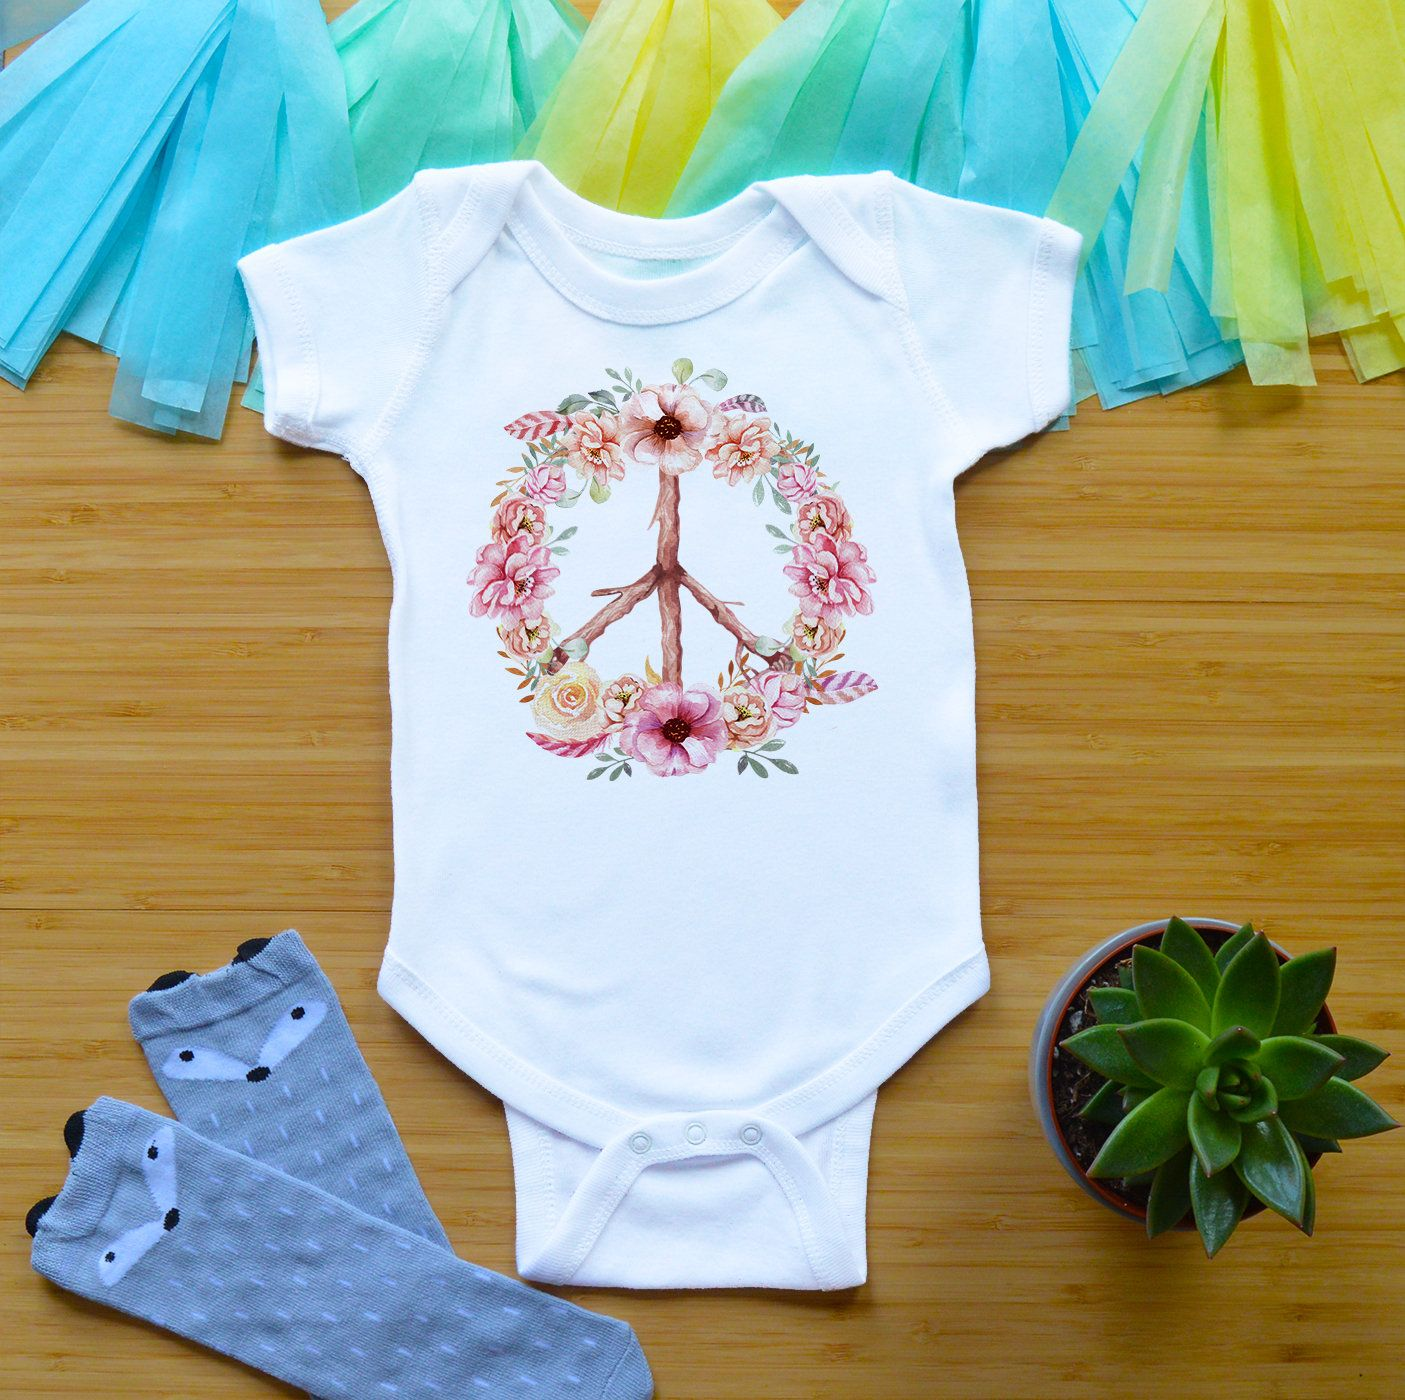 Stomach Cancer Awareness Baby T-Shirt inktastic We Will Find a Cure